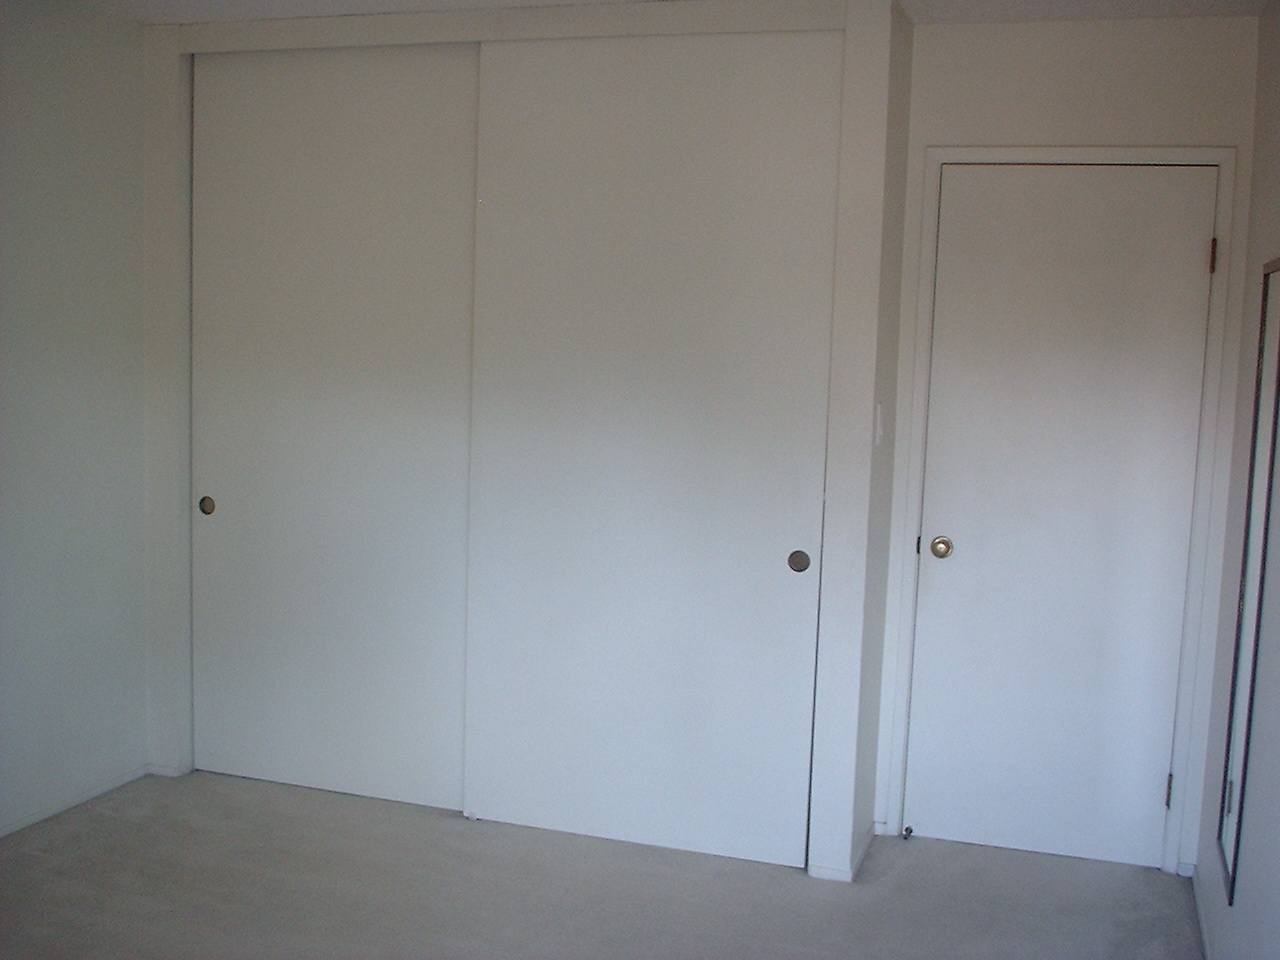 Bedroom 3 - Closet and Door